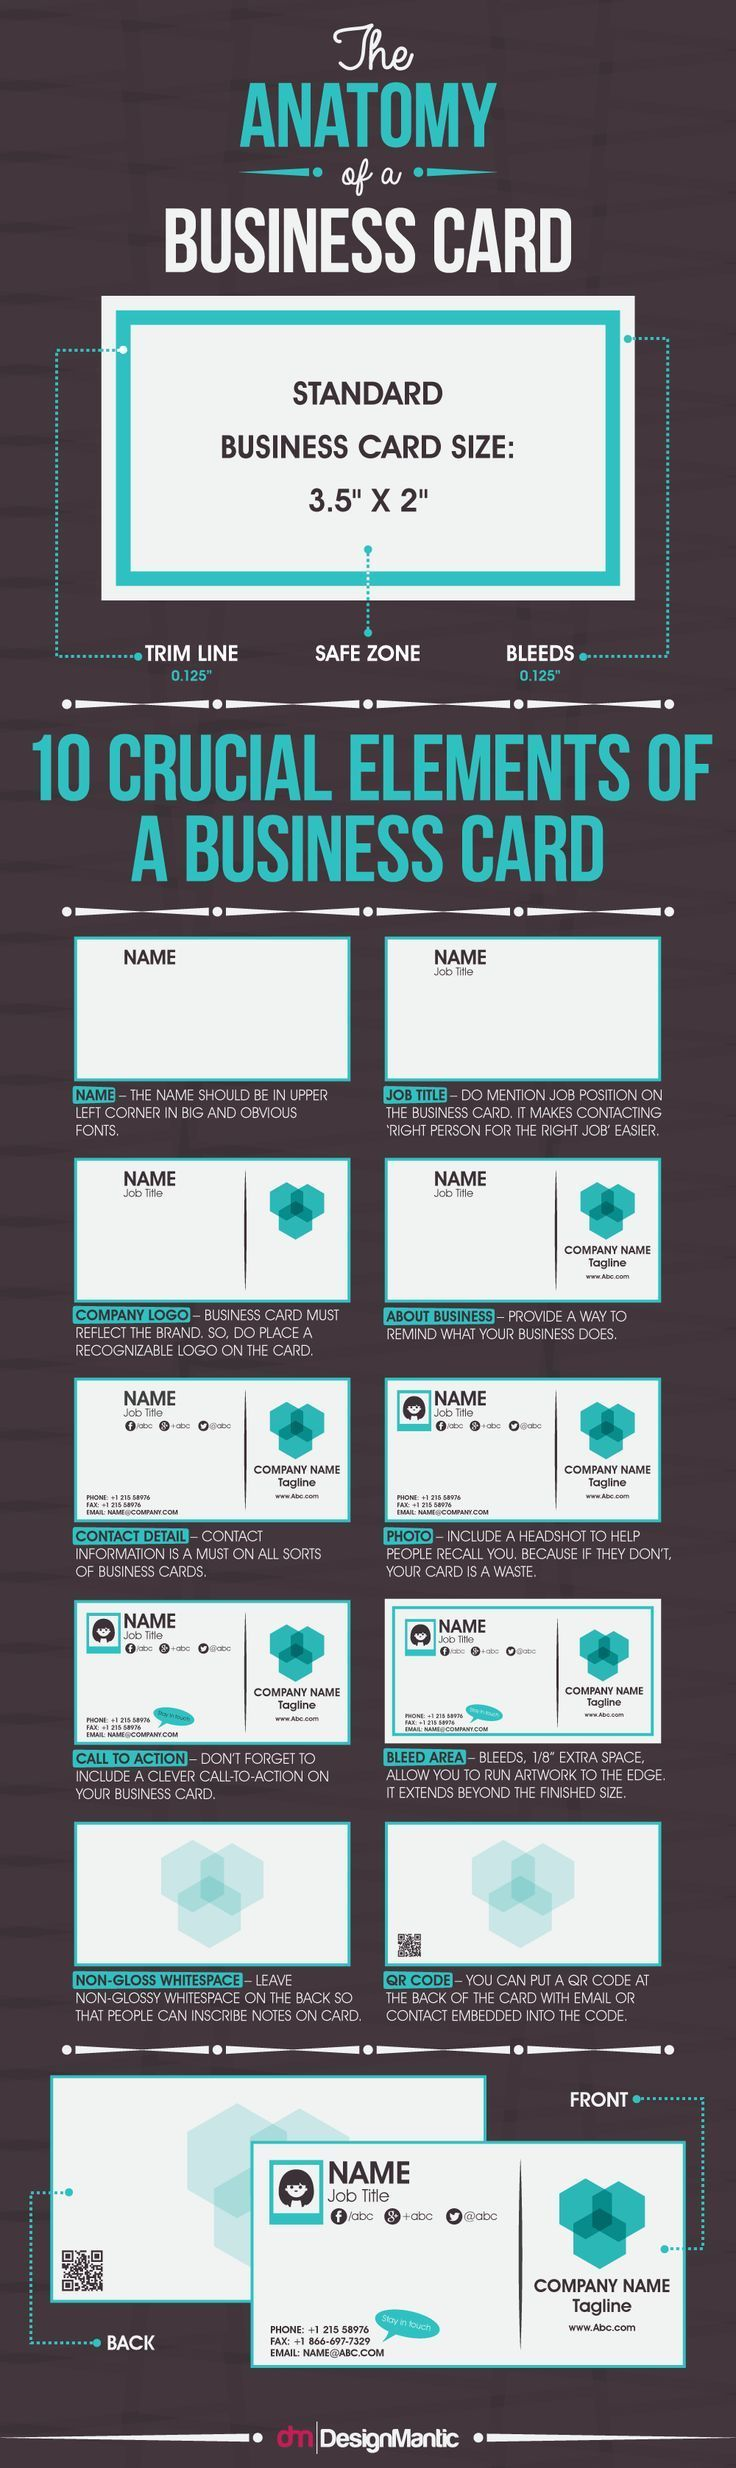 The Anatomy Of A Business Card #Infographic #Business | http://www.visualistan.com/